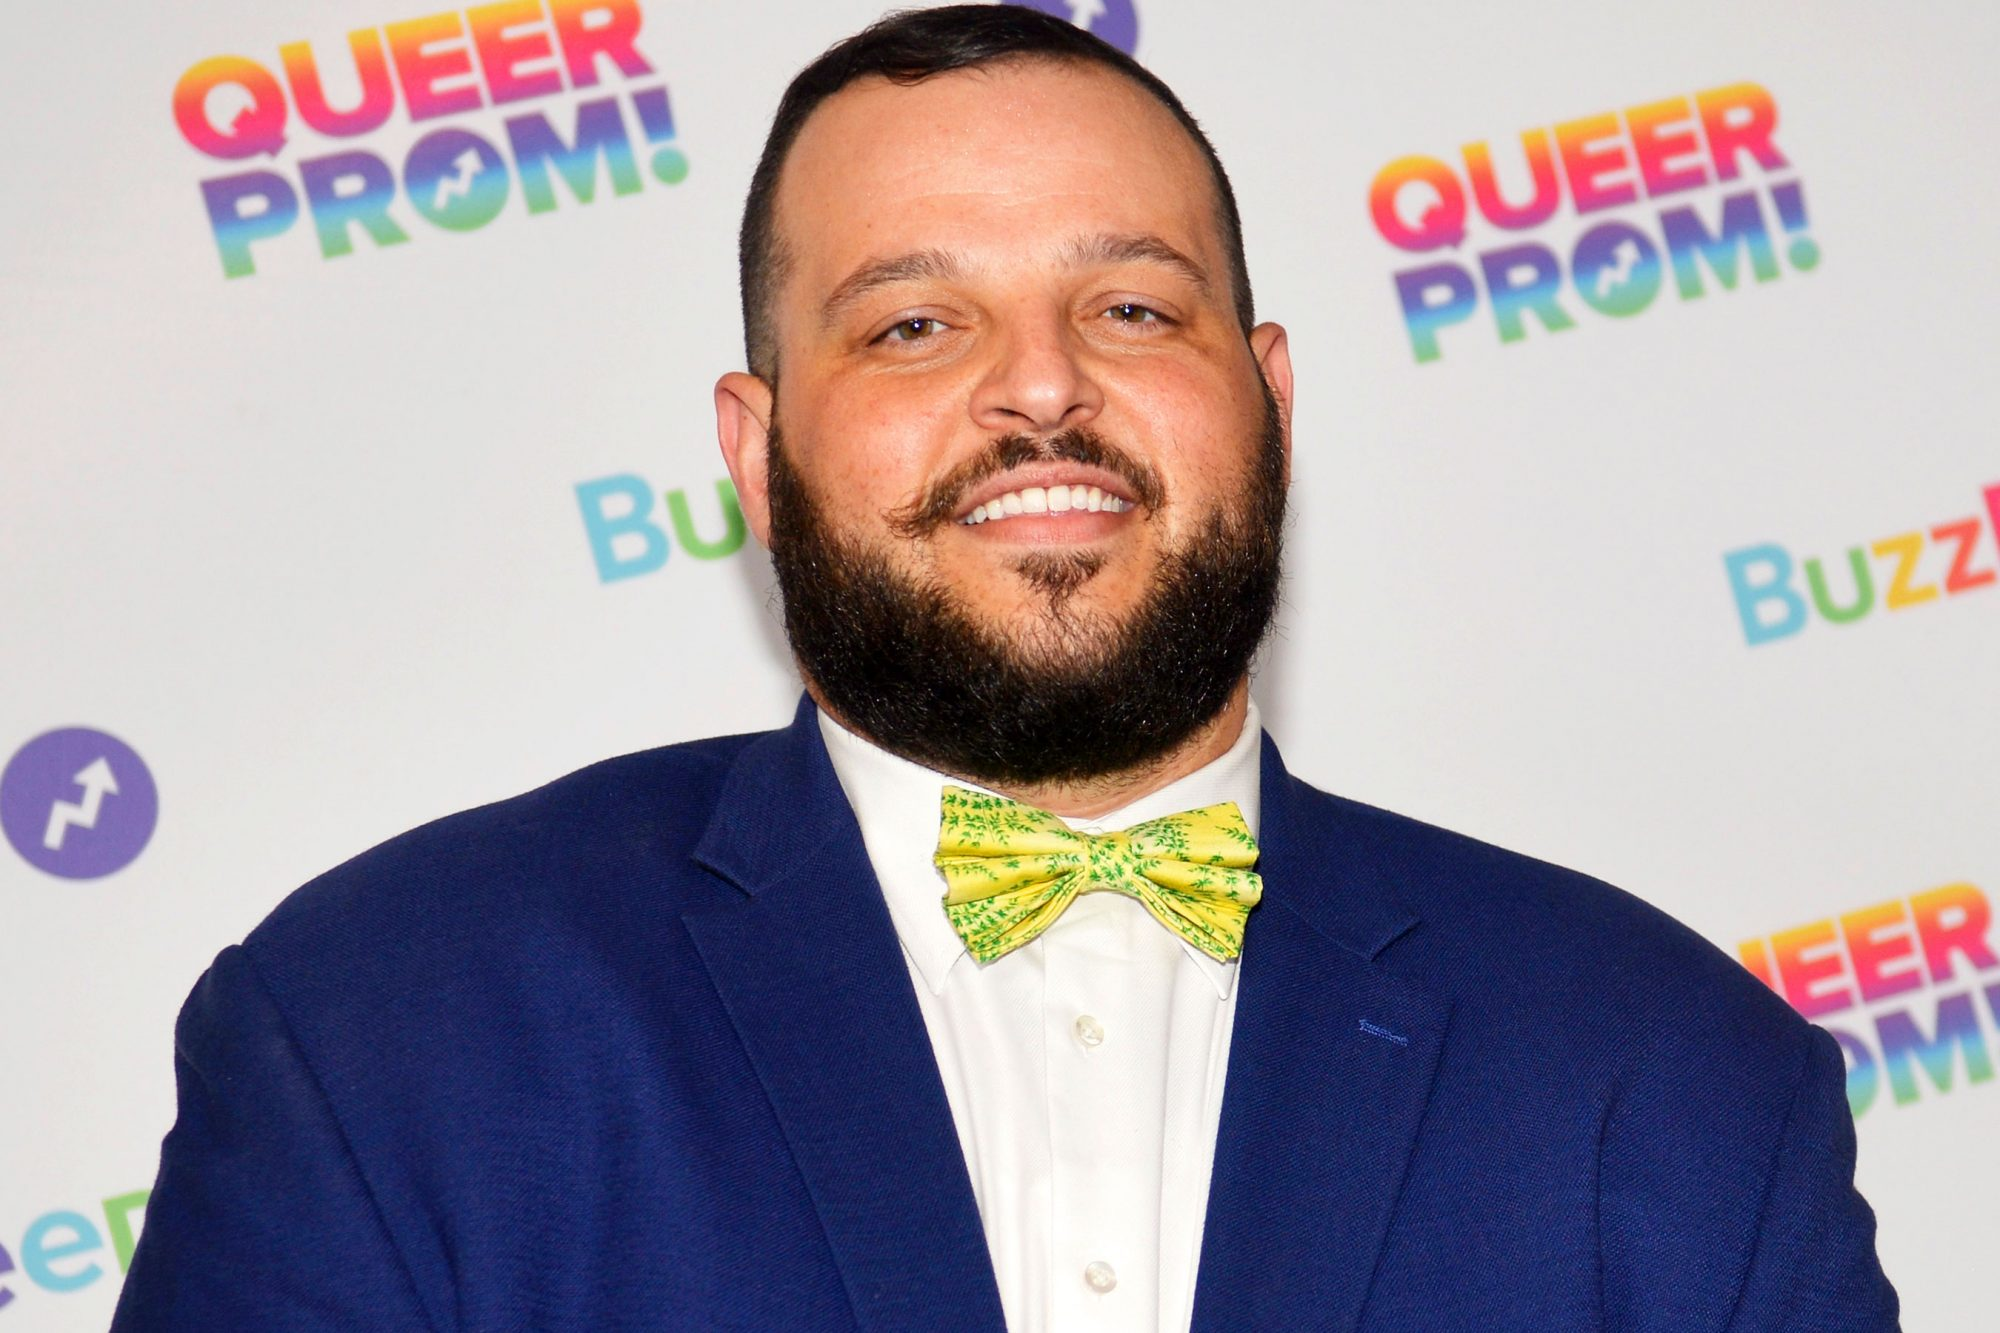 Buzzfeed Hosts 1st Inaugural Queer Prom For LGBT Youth Los Angeles